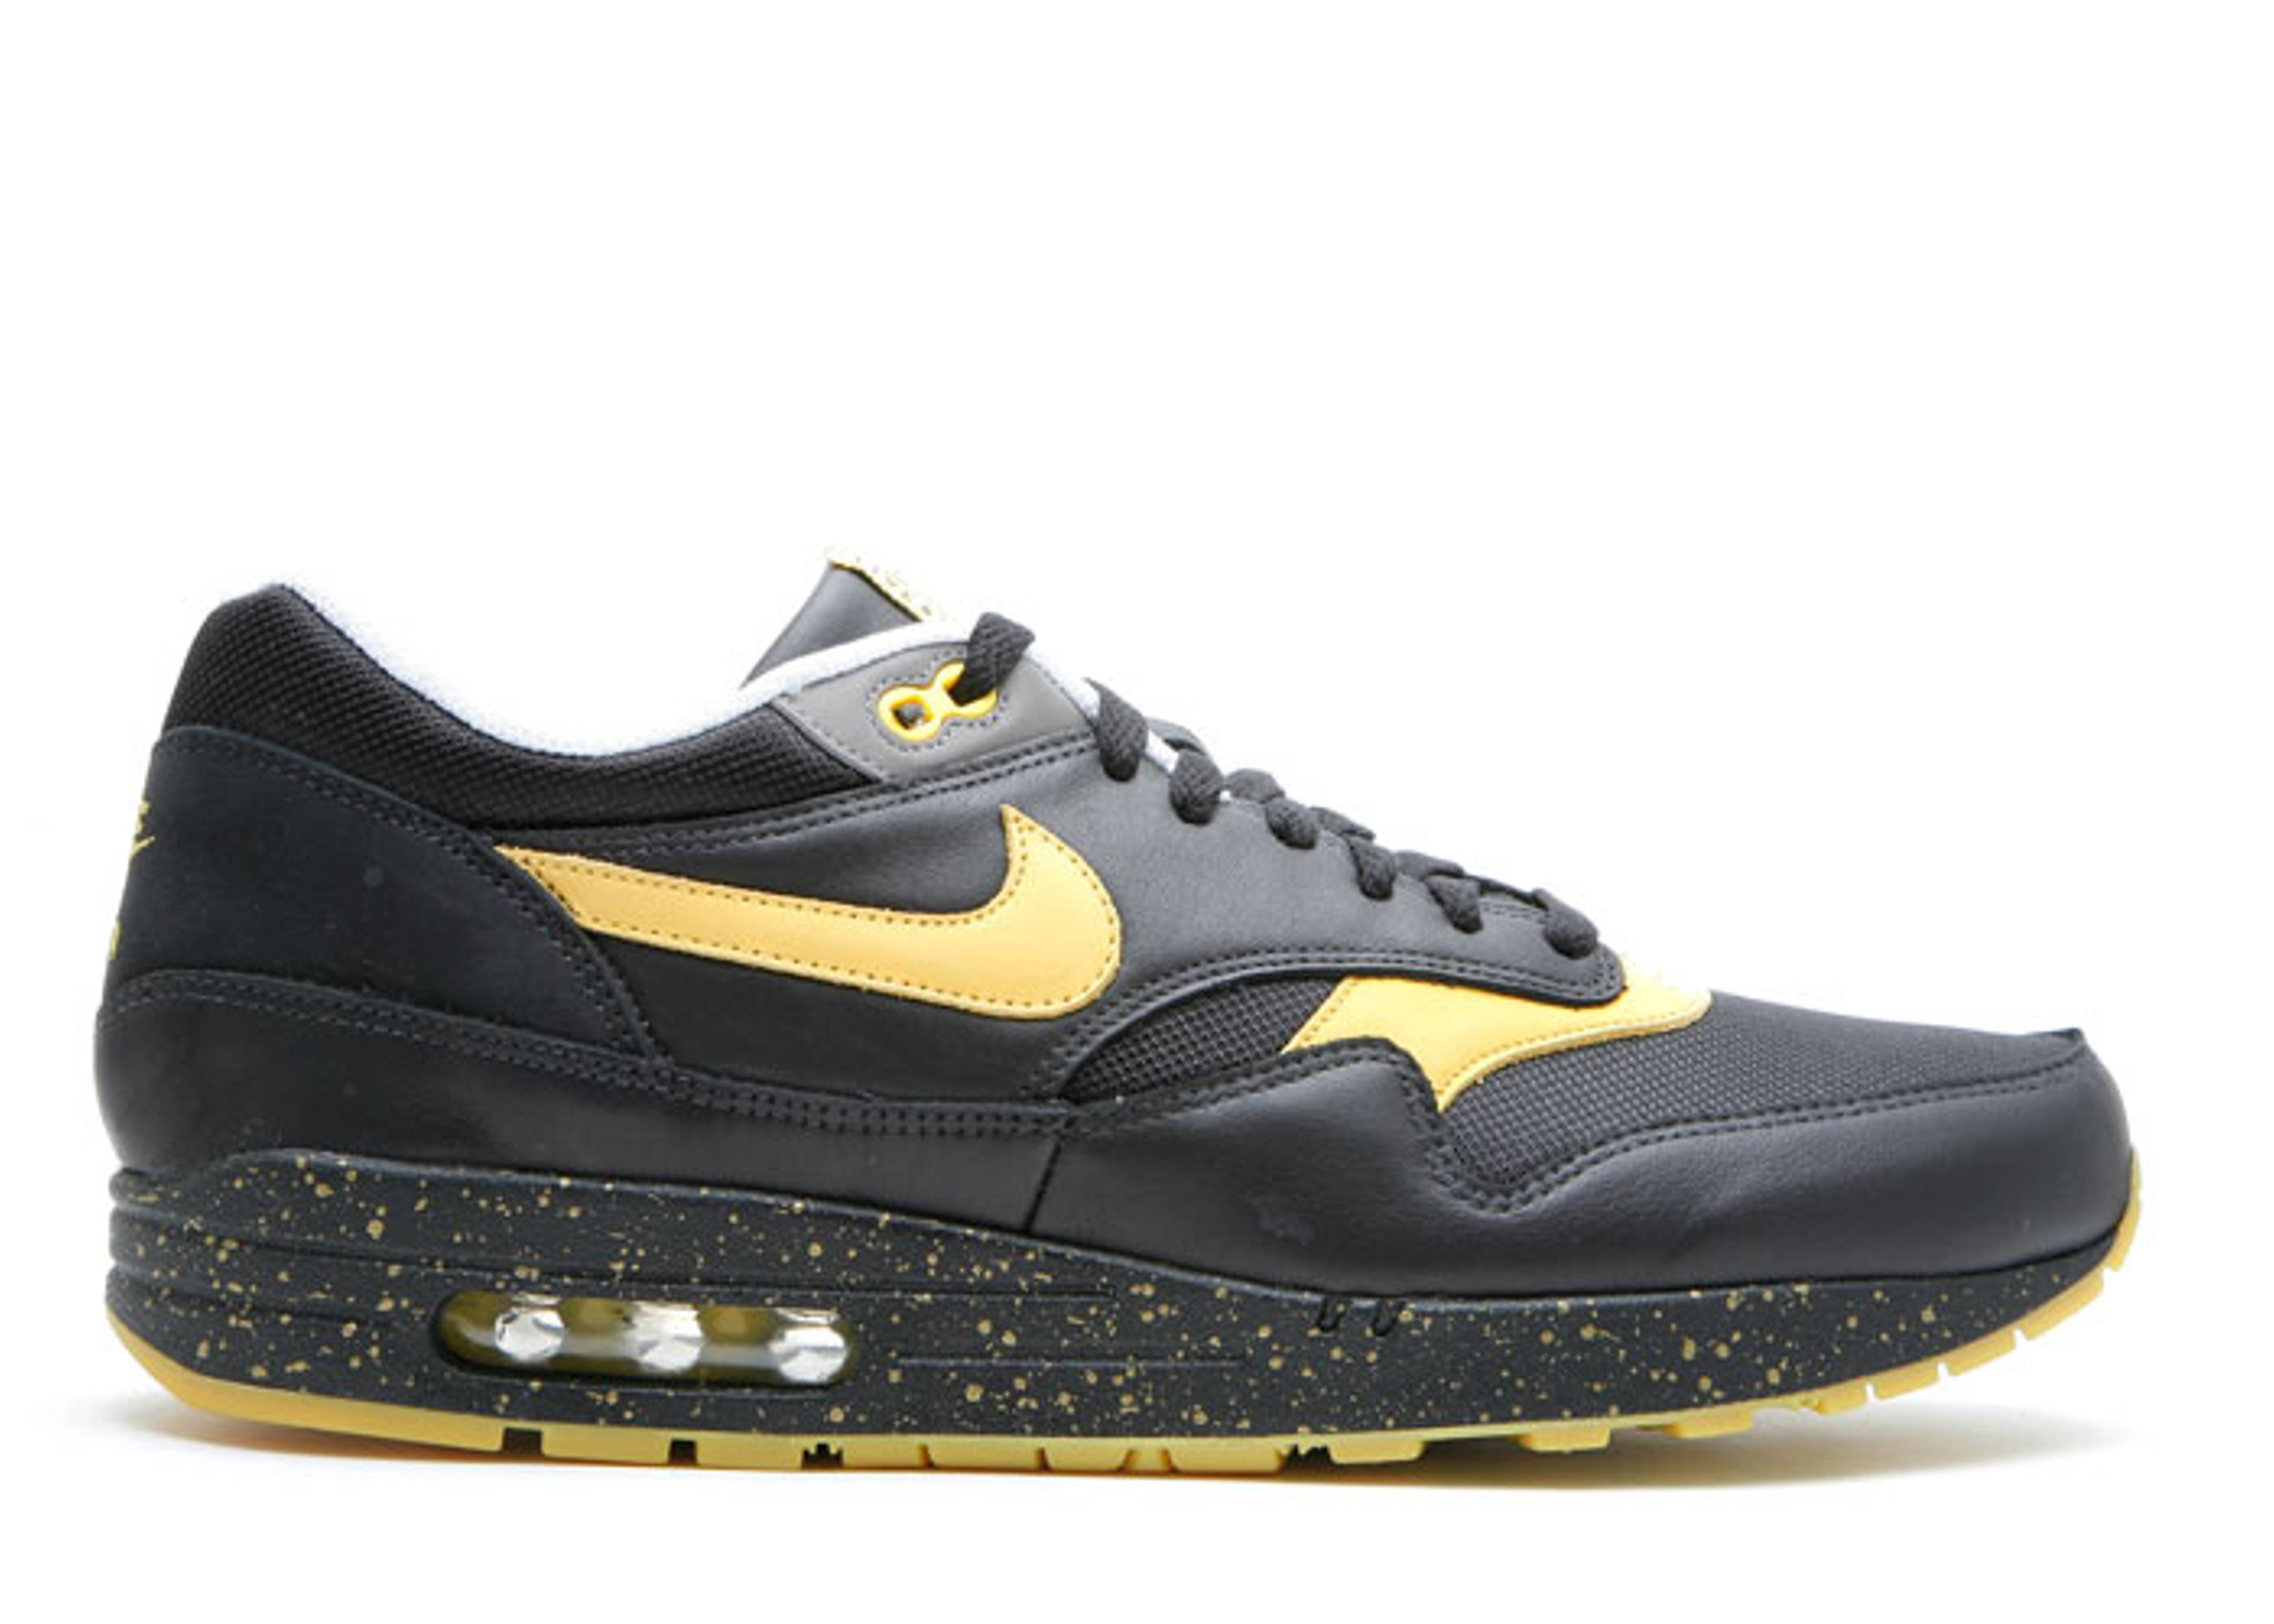 Nike Air Max 1 Livestrong Sneakers (Black/Vrsty Maize-Wht-Sft Gry)